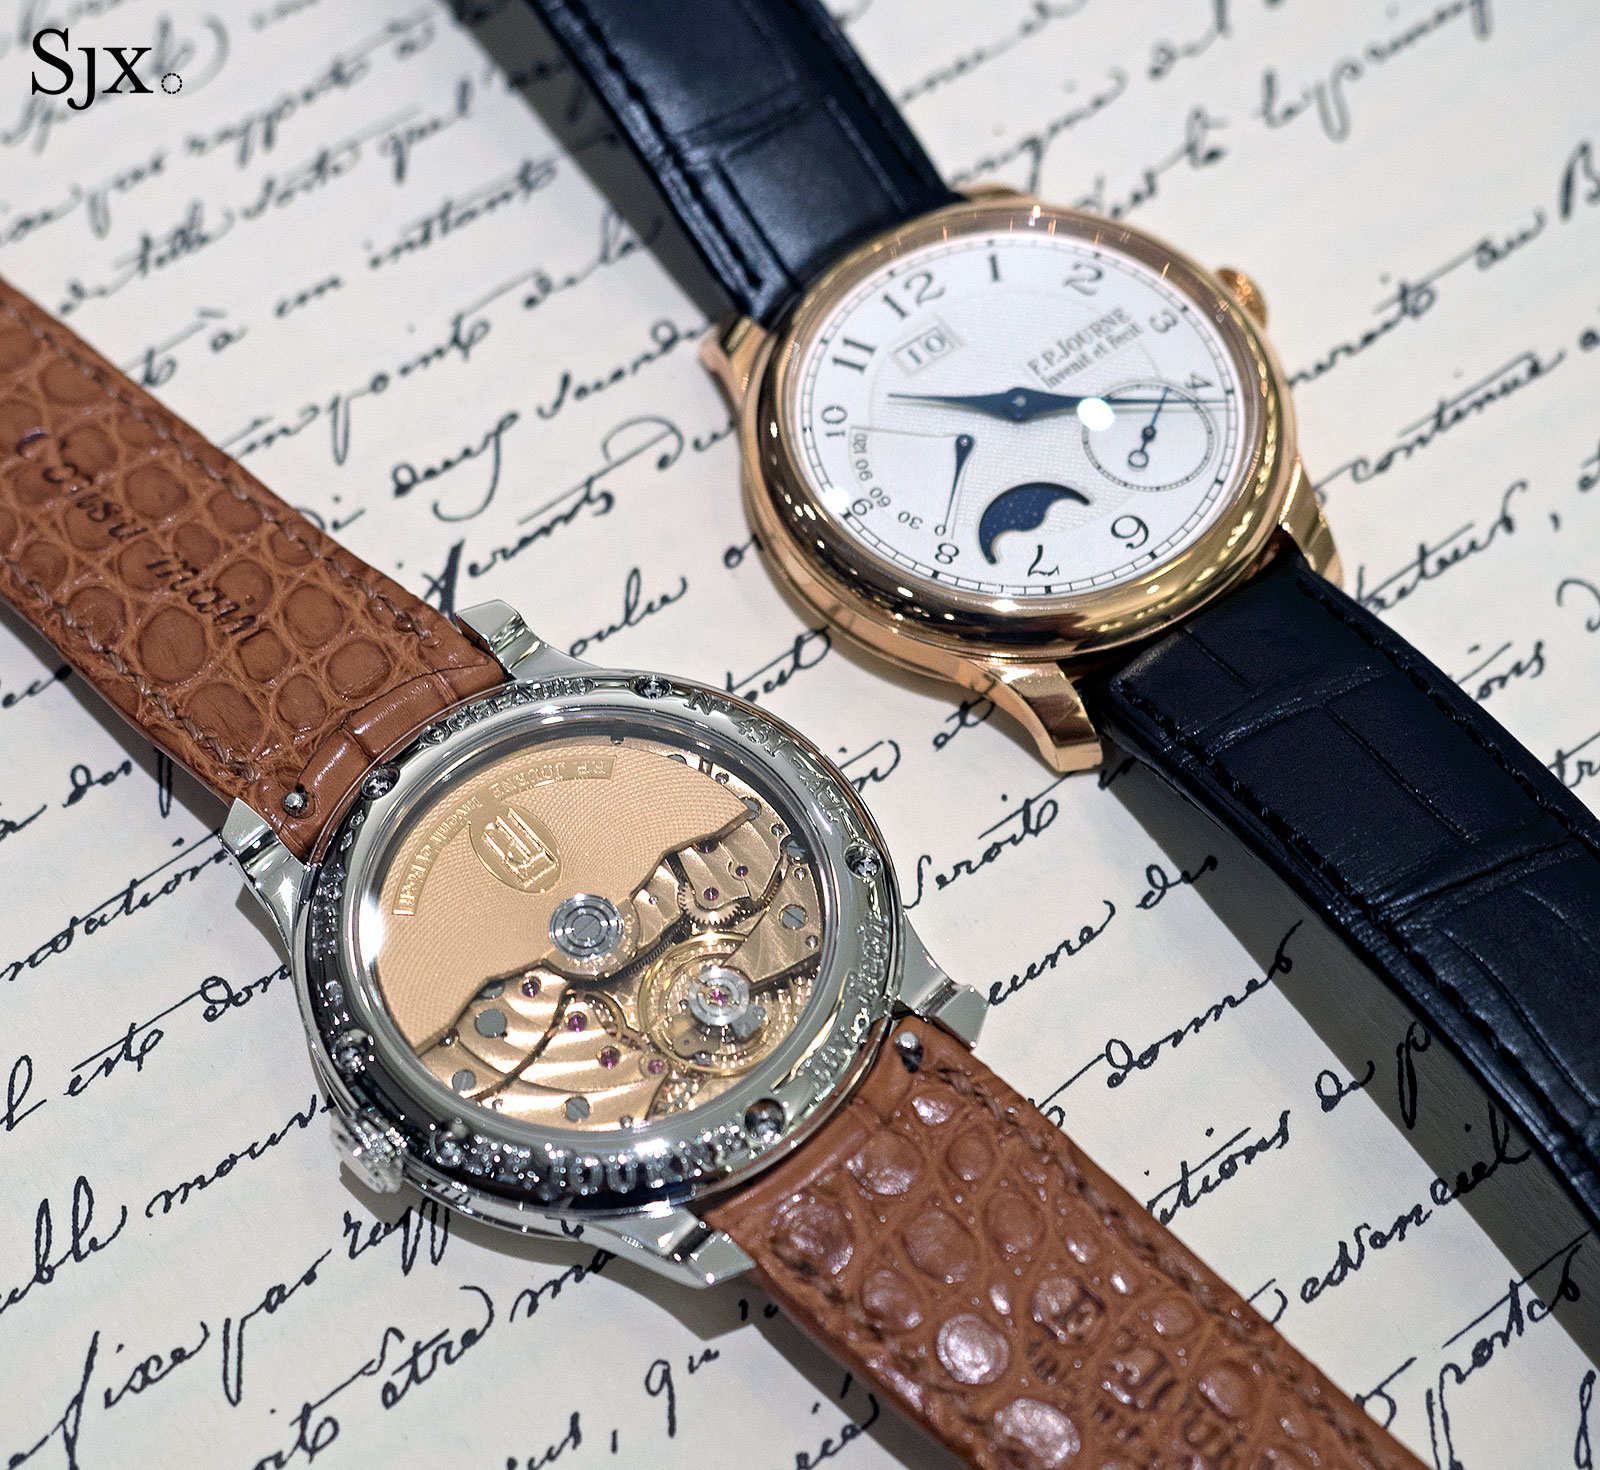 FP Journe Octa Automatique Lune Havana 7